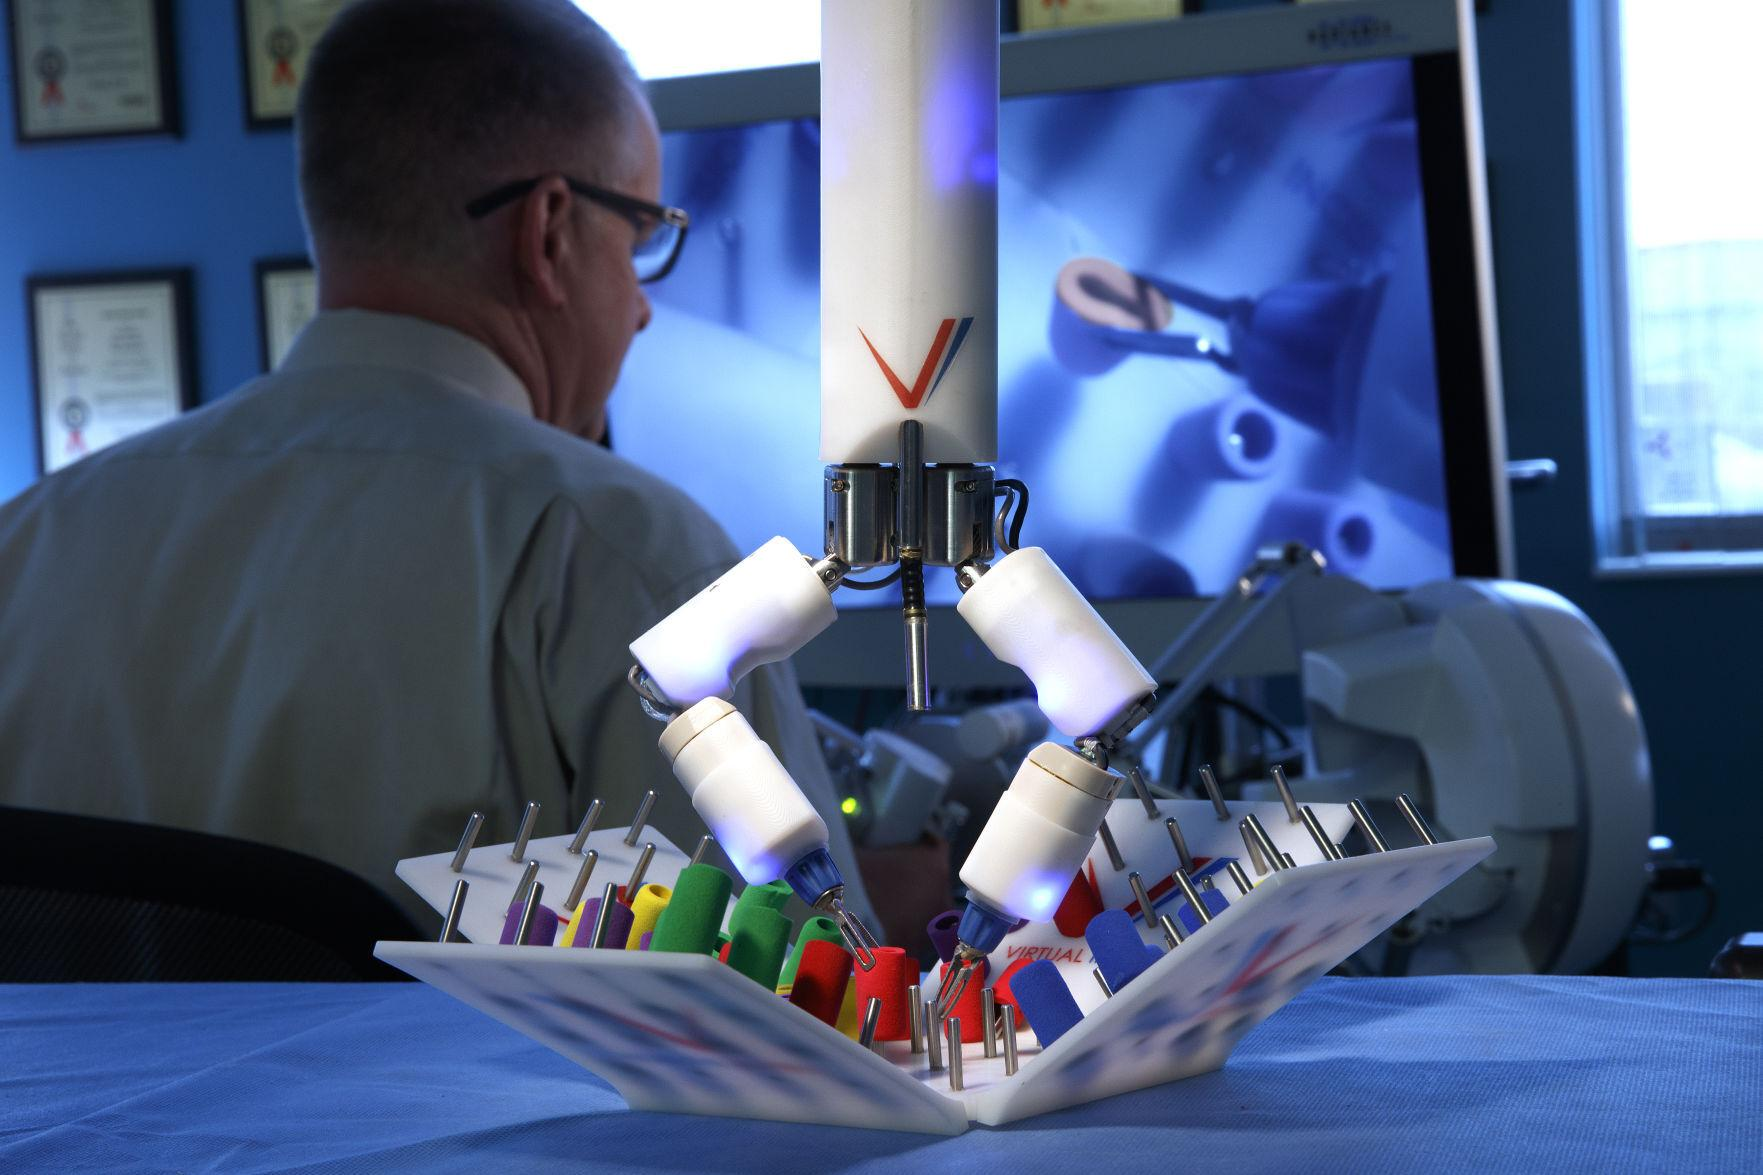 Virtual Incision used its surgical robot in a successful surgery at Bryan Medical Center. | CRAIG CHANDLER, UNIVERSITY COMMUNICATIONS